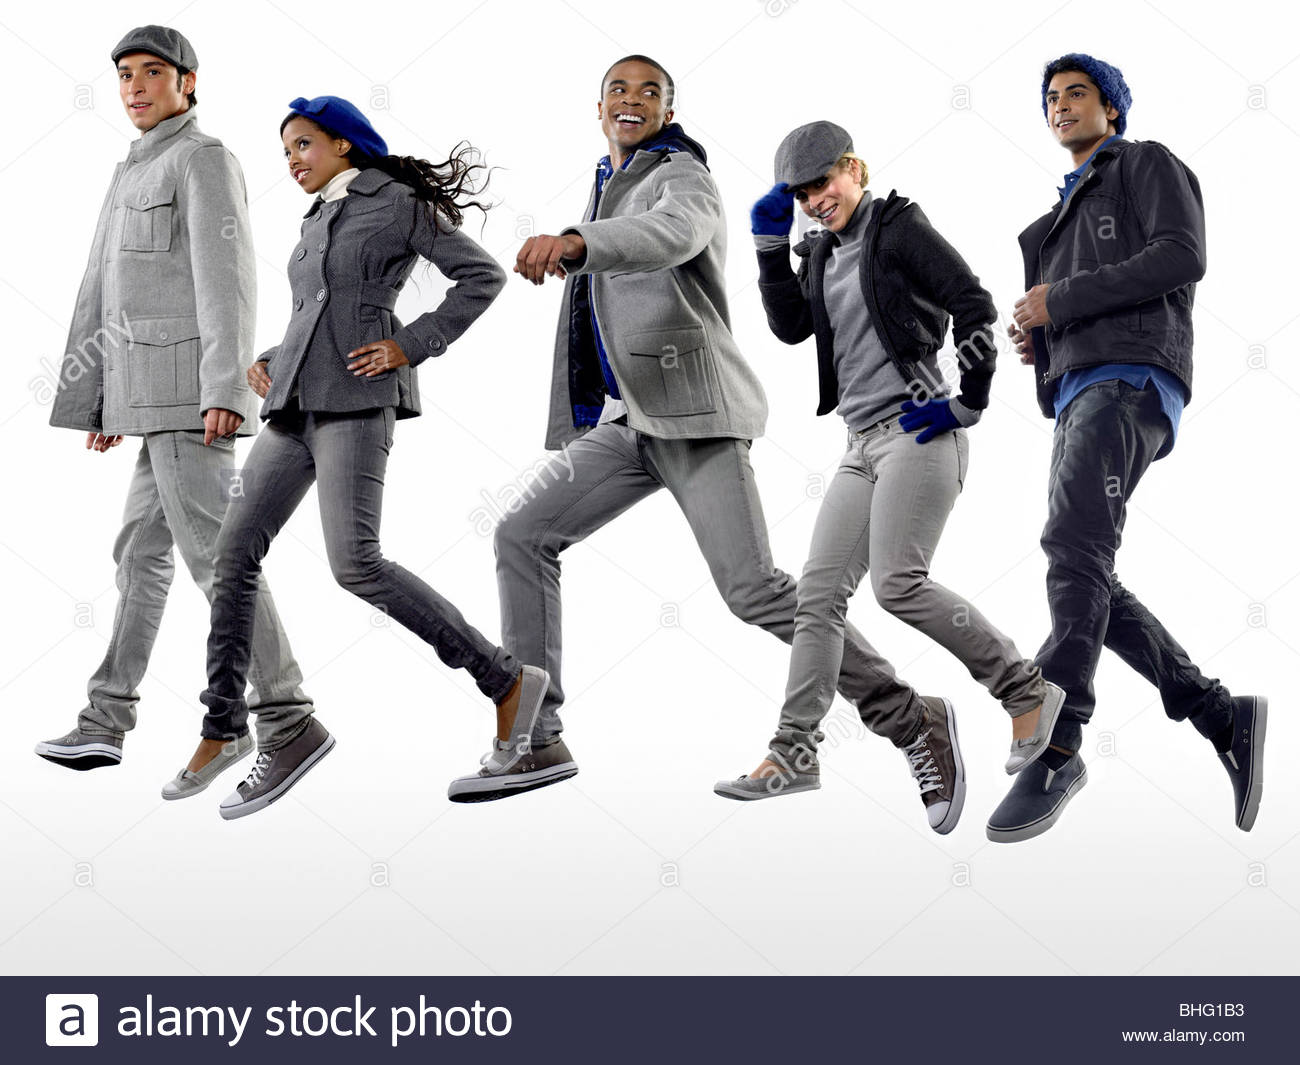 Five young people in coats jumping - Stock Image